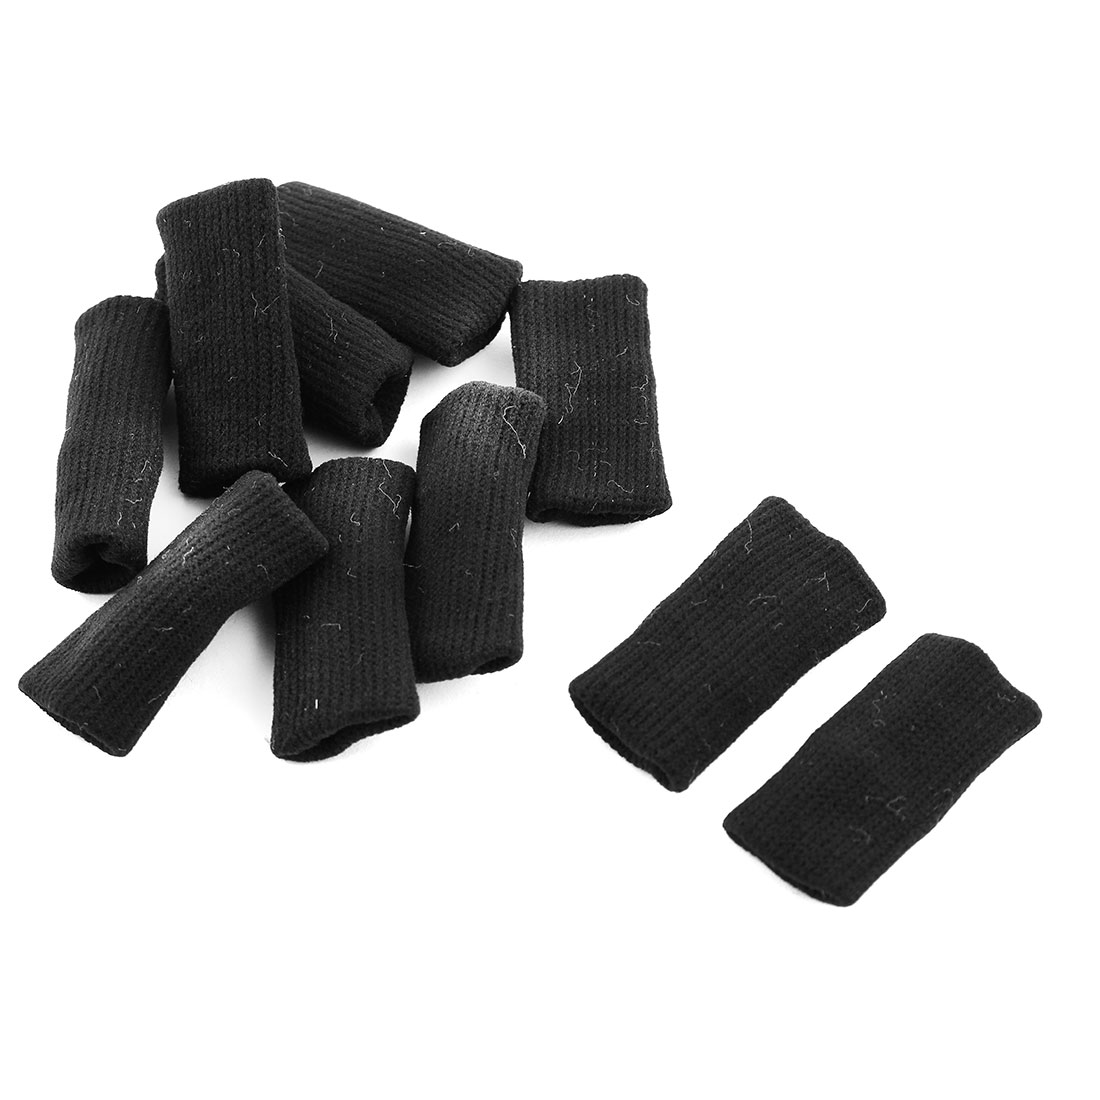 Sport Volleyball Stretchy Finger Brace Protector Sleeve Guard Support Black 10pcs